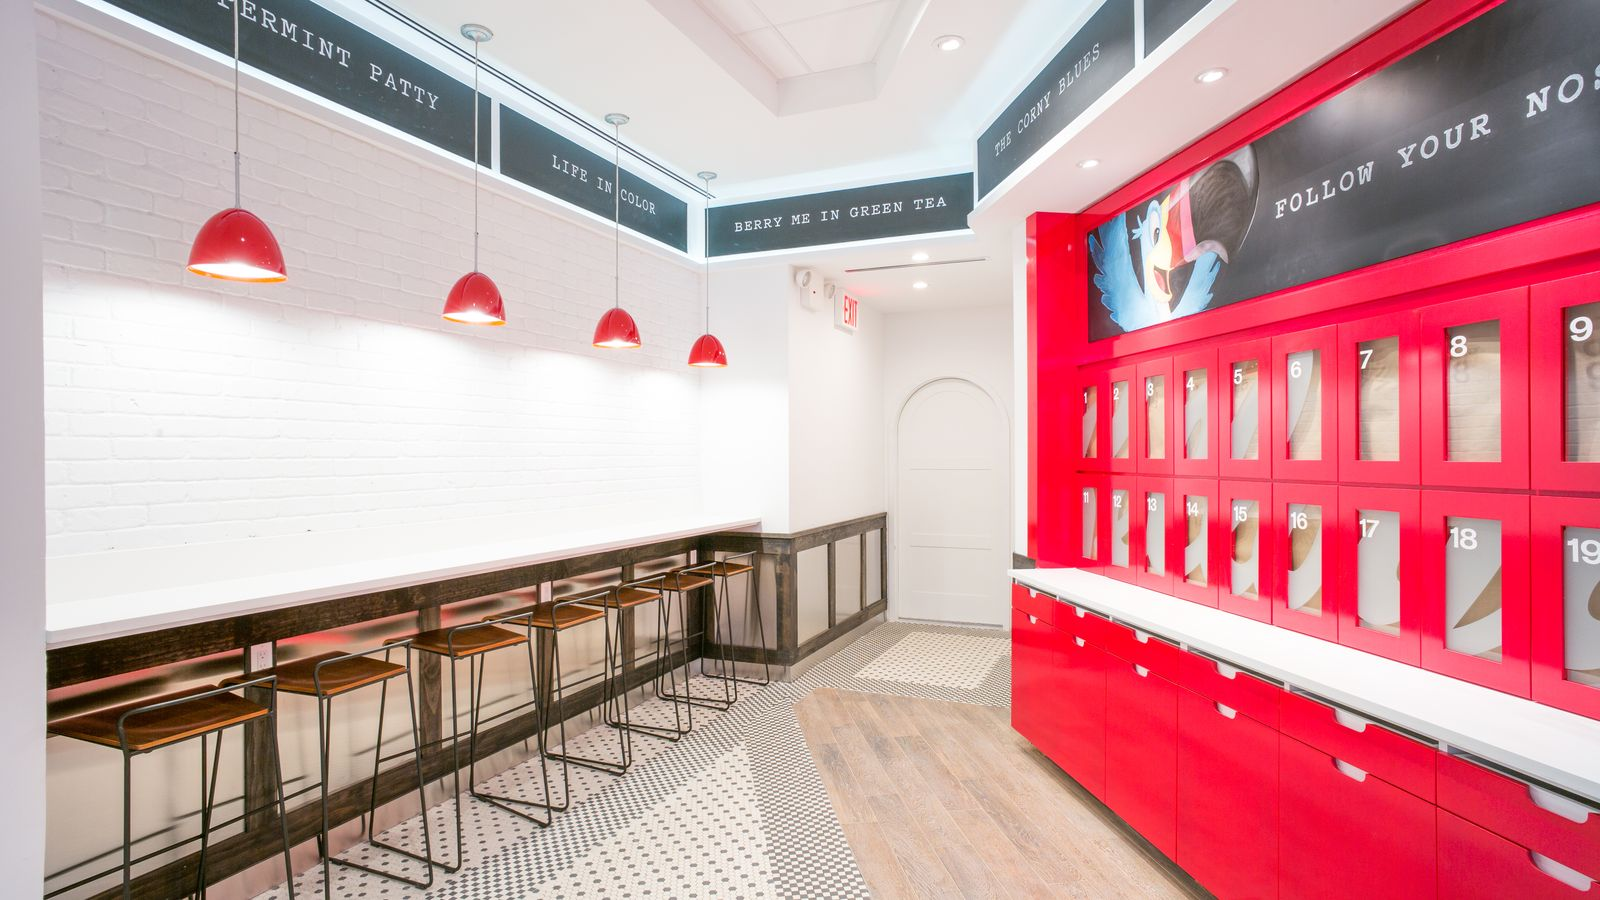 Kellogg s concept store by chipman design architecture